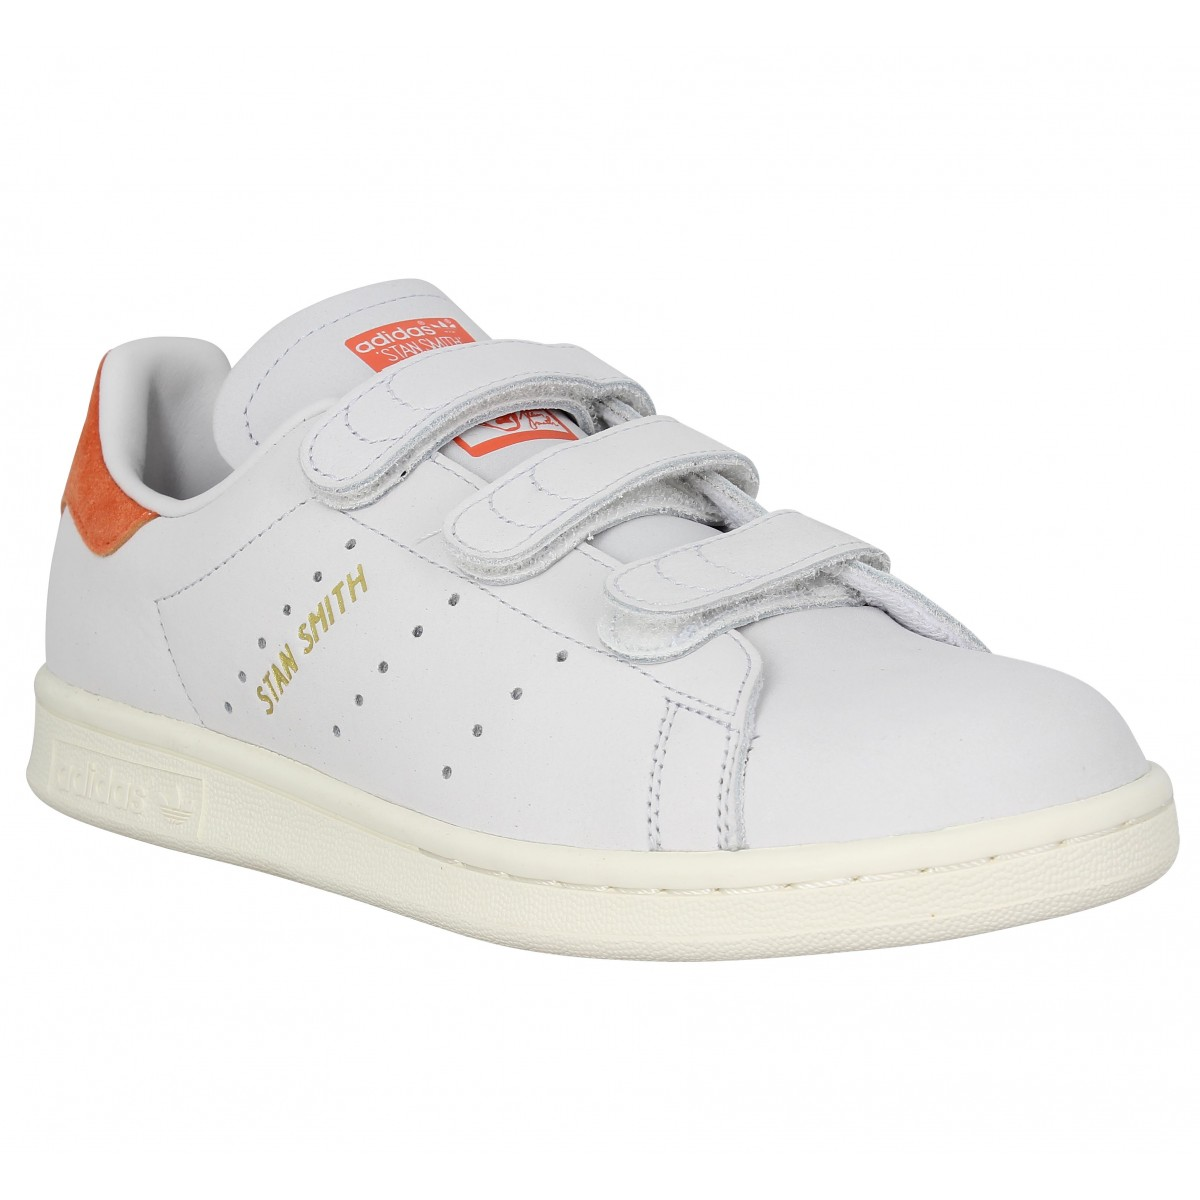 plus récent a3313 8f982 basket adidas scratch femme